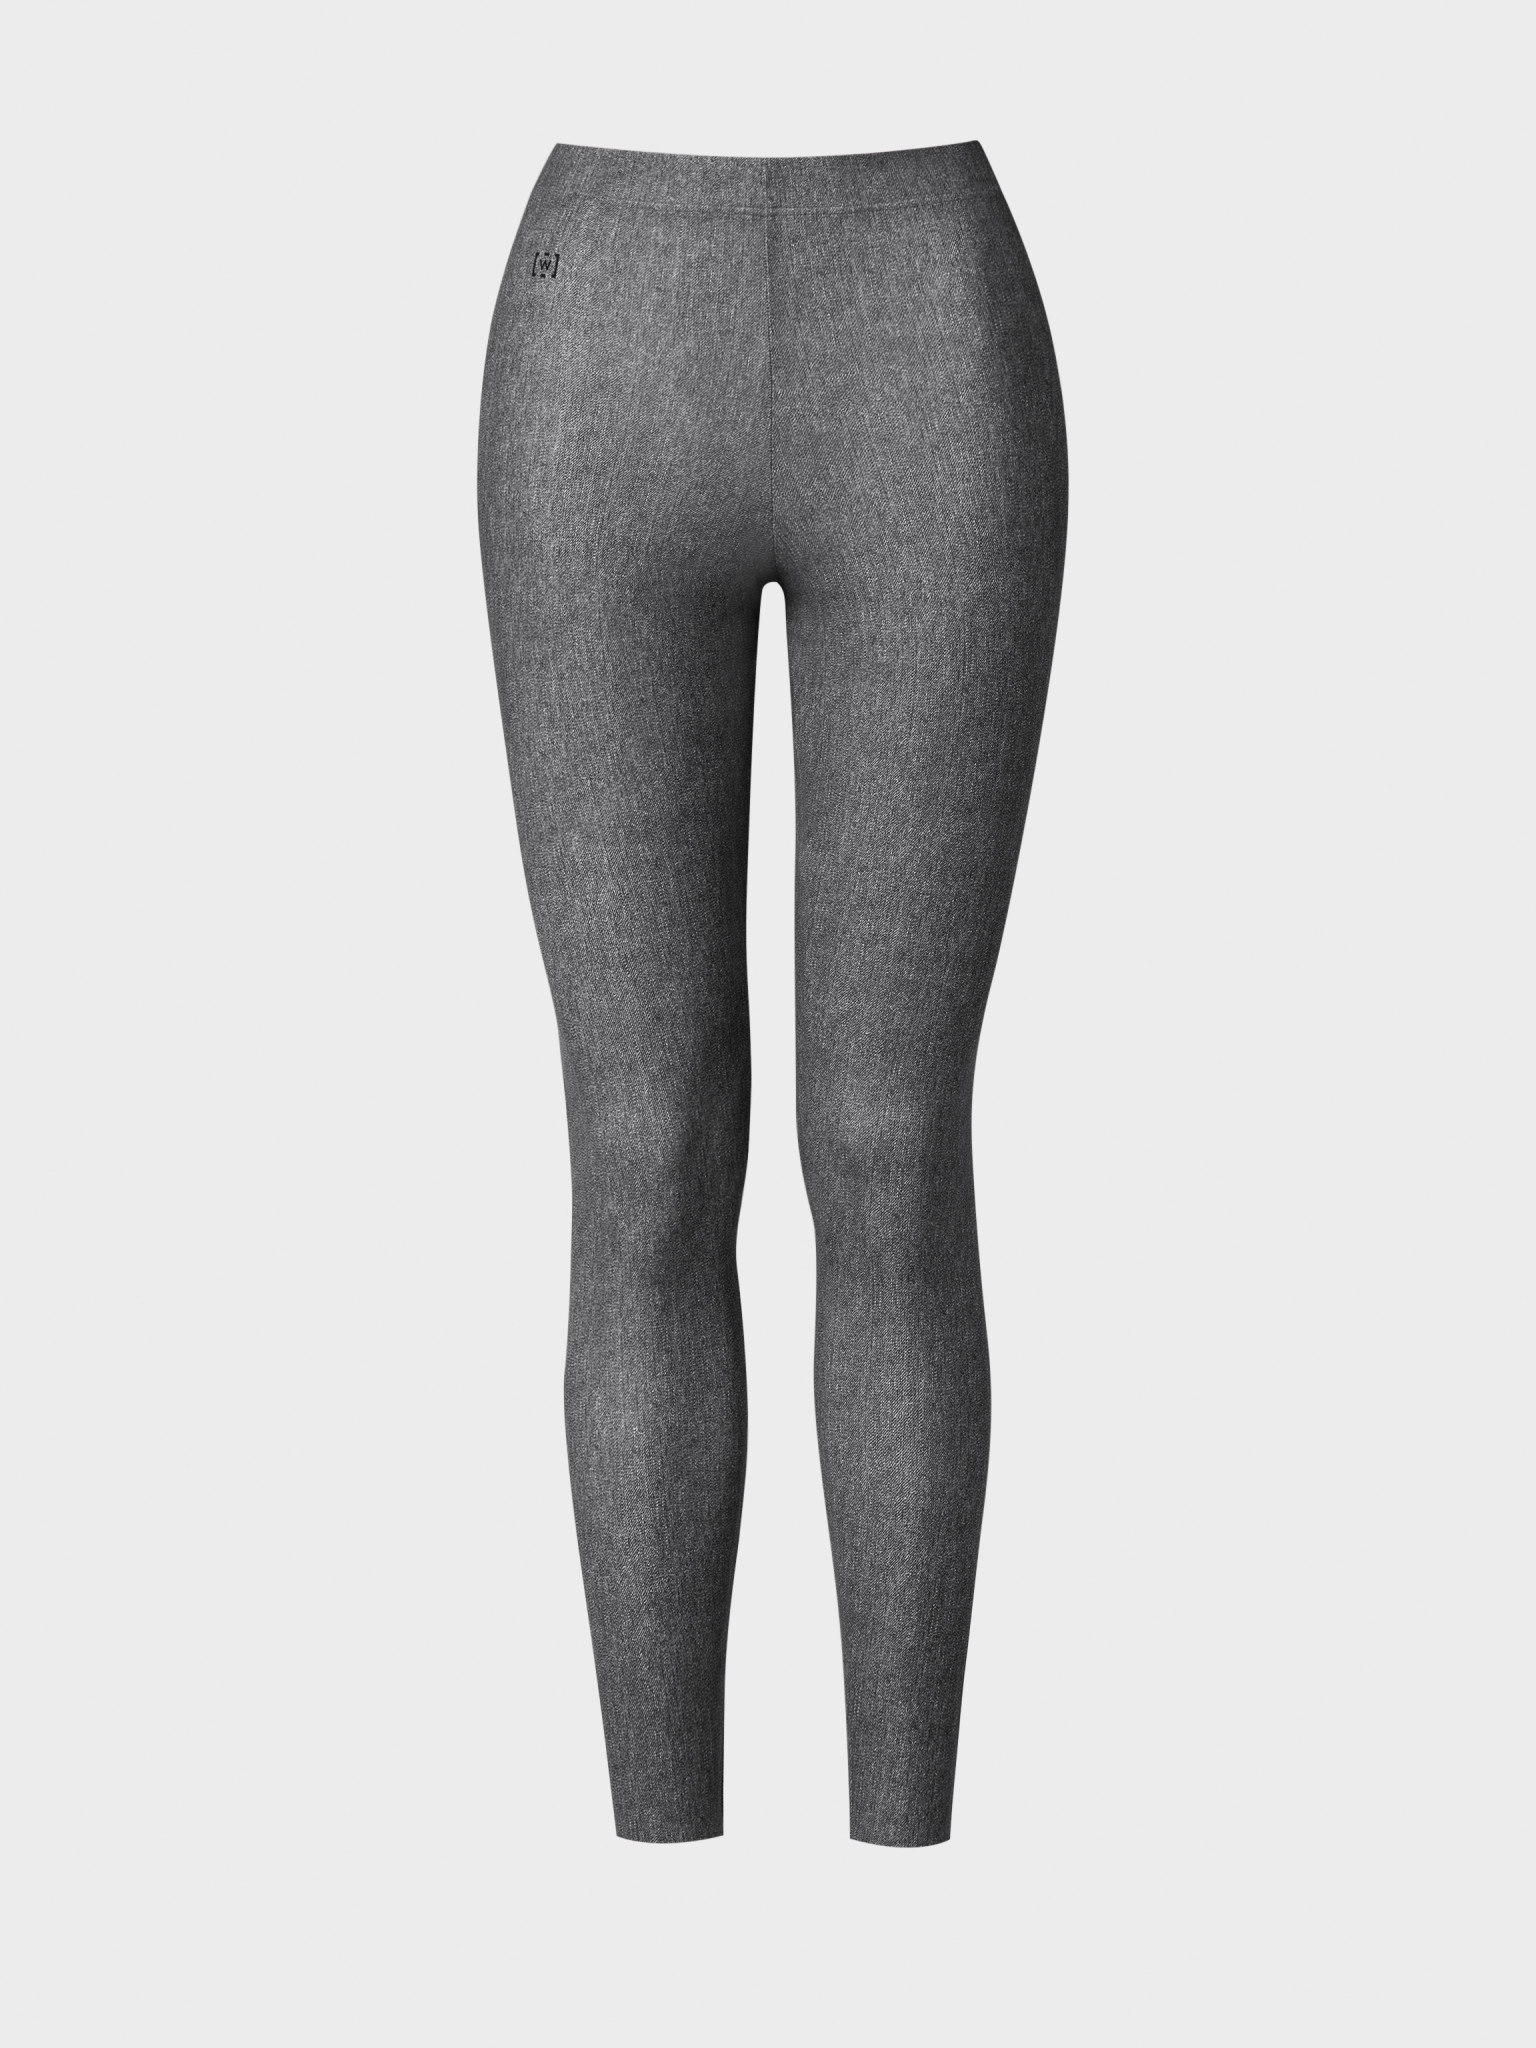 WOLFORD 19287 Taylor Cropped Leggings